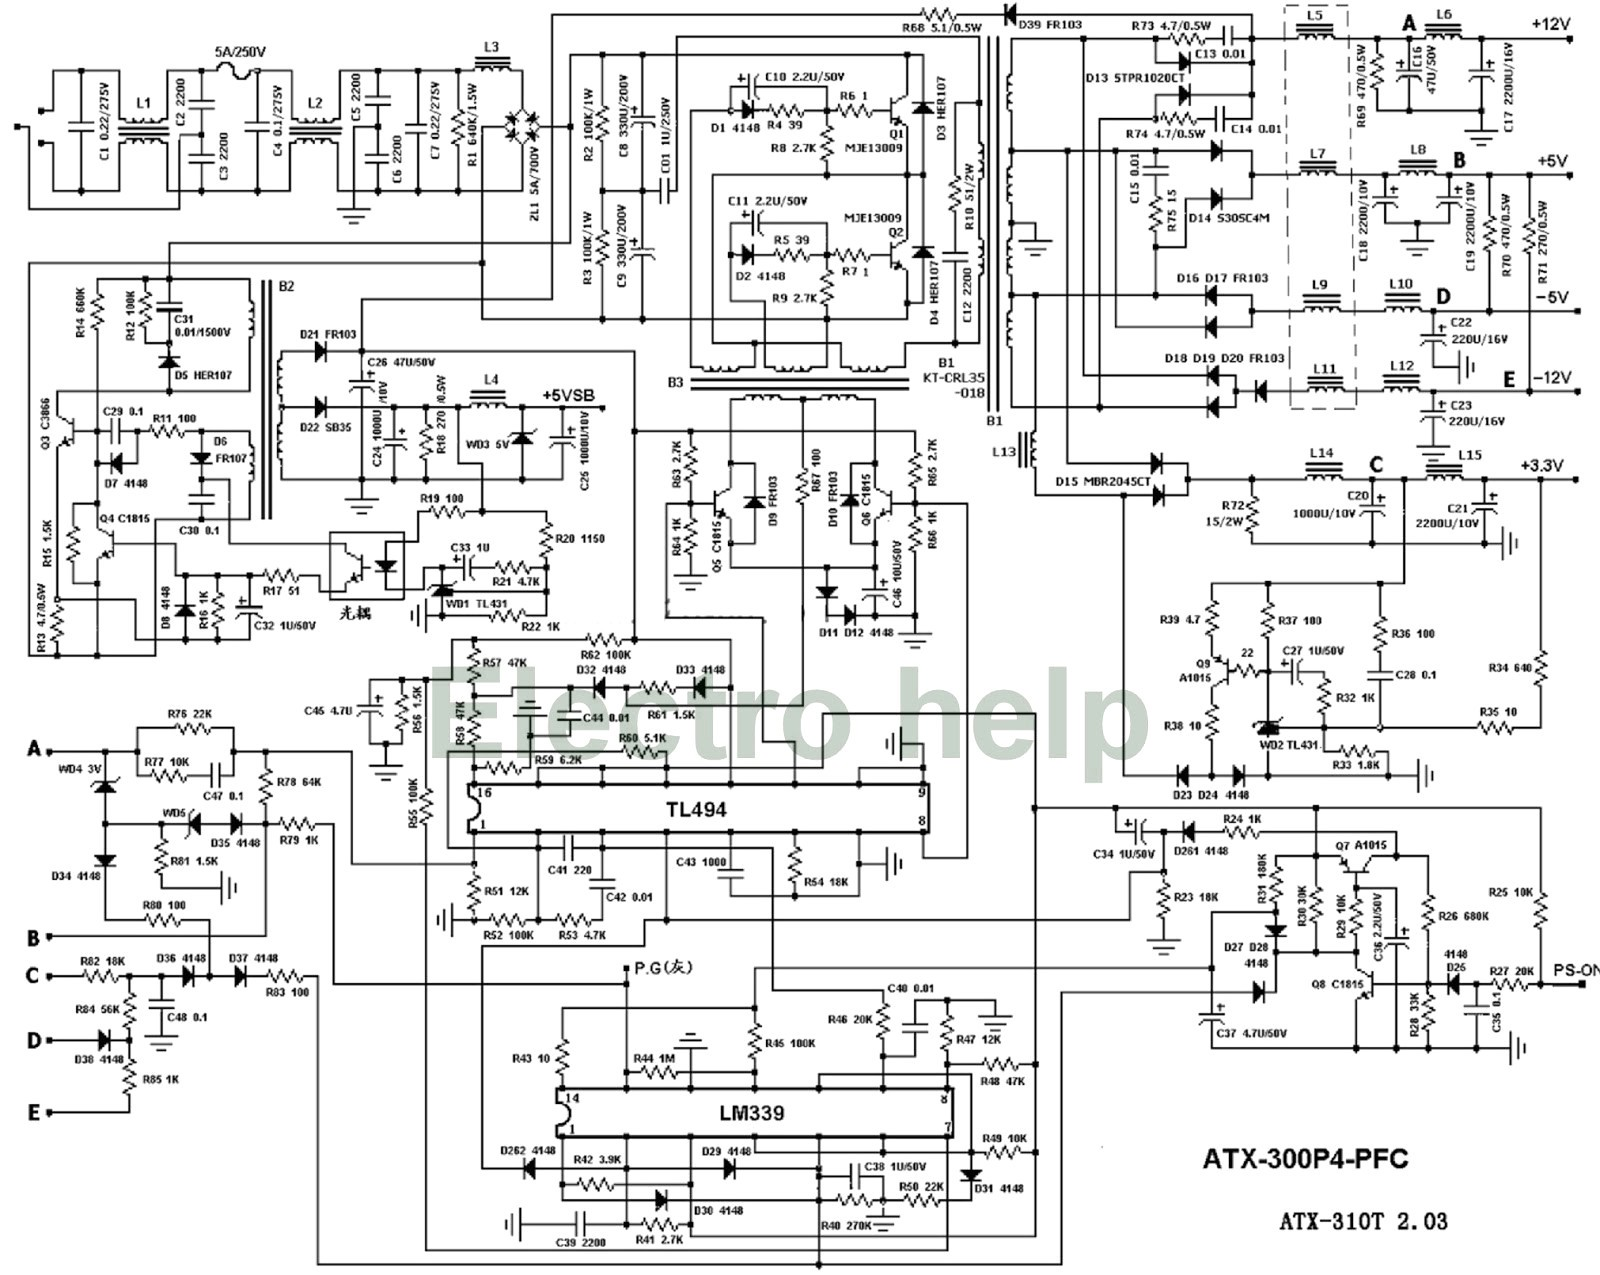 hight resolution of pc wiring schematic wiring diagrams scematic lowrance wiring schematic pc wiring schematic wiring library block diagram